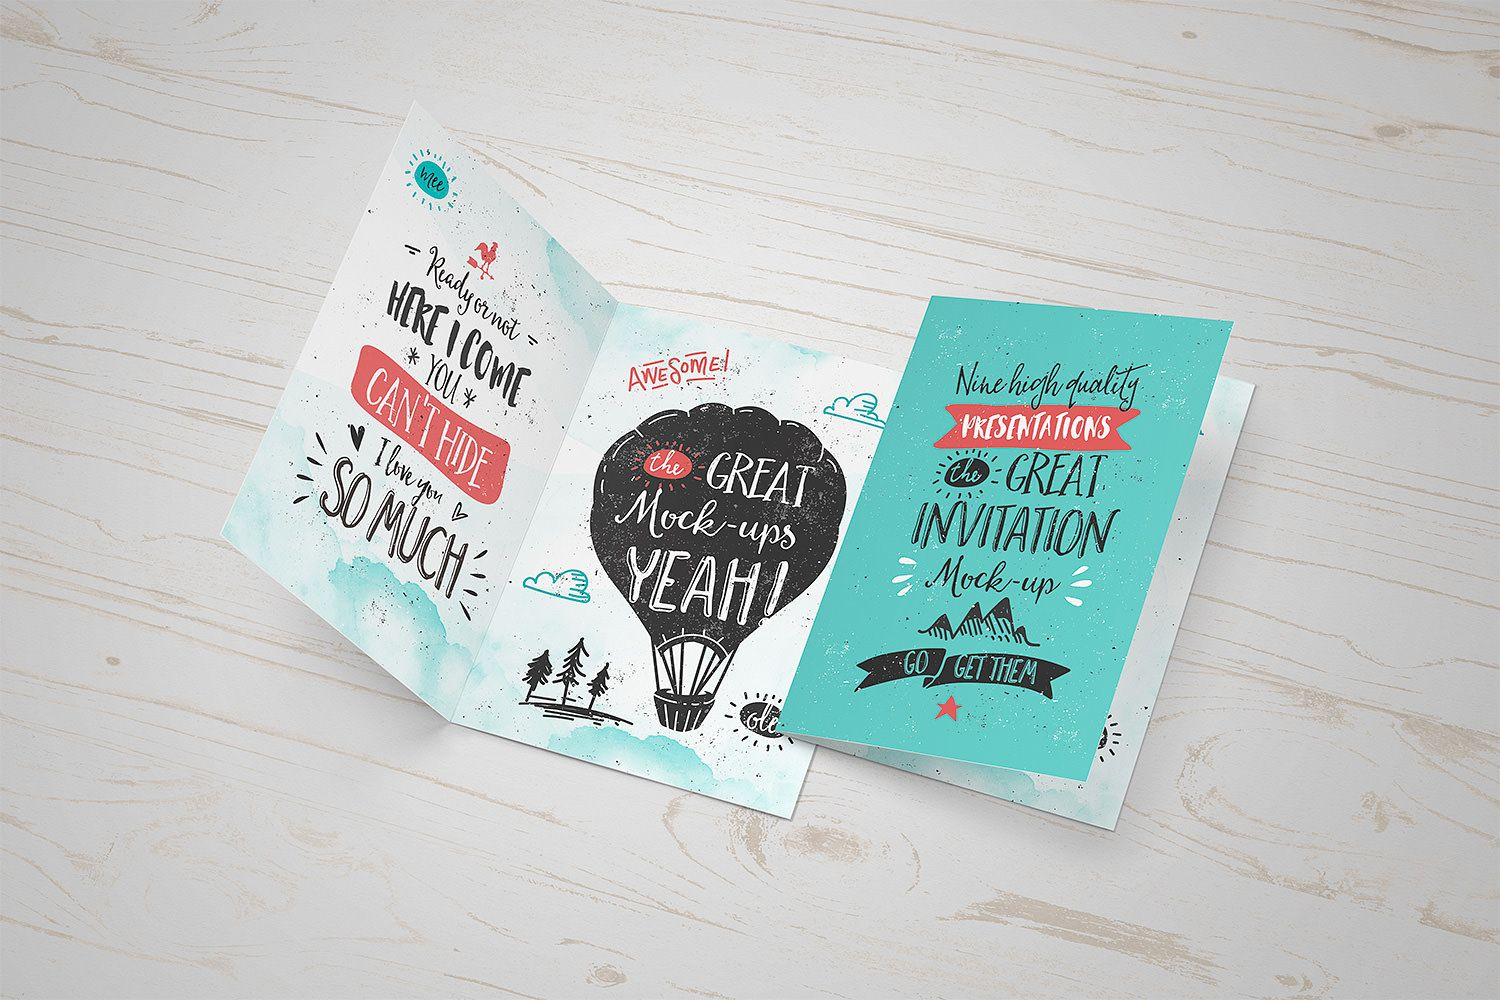 Great Free Invitation Or Greeting Card Mockup PSD